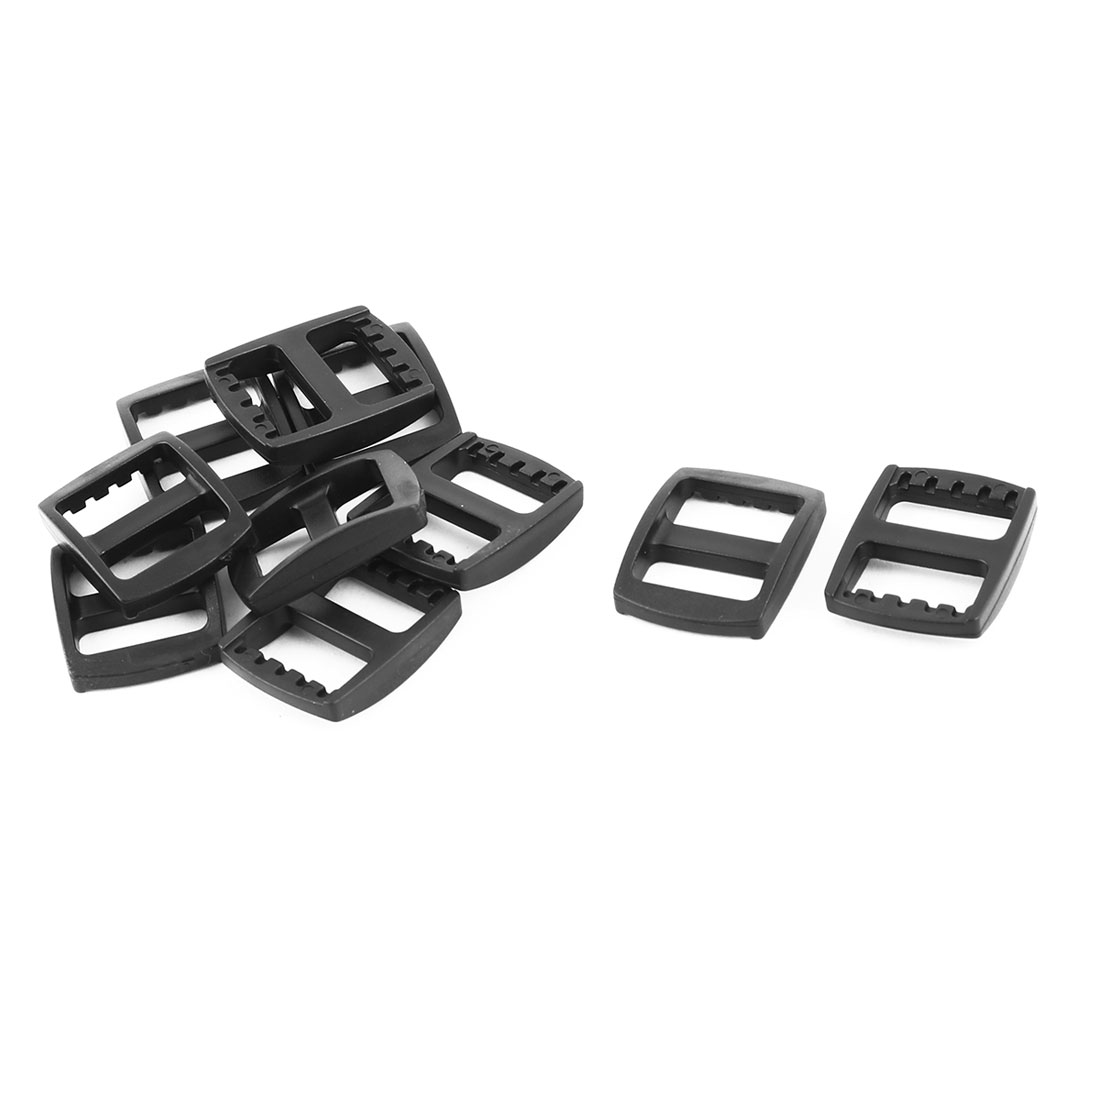 Travel Plastic Adjustable Backpack Tri Glide Buckle Black 15mm Strap Width 10pcs